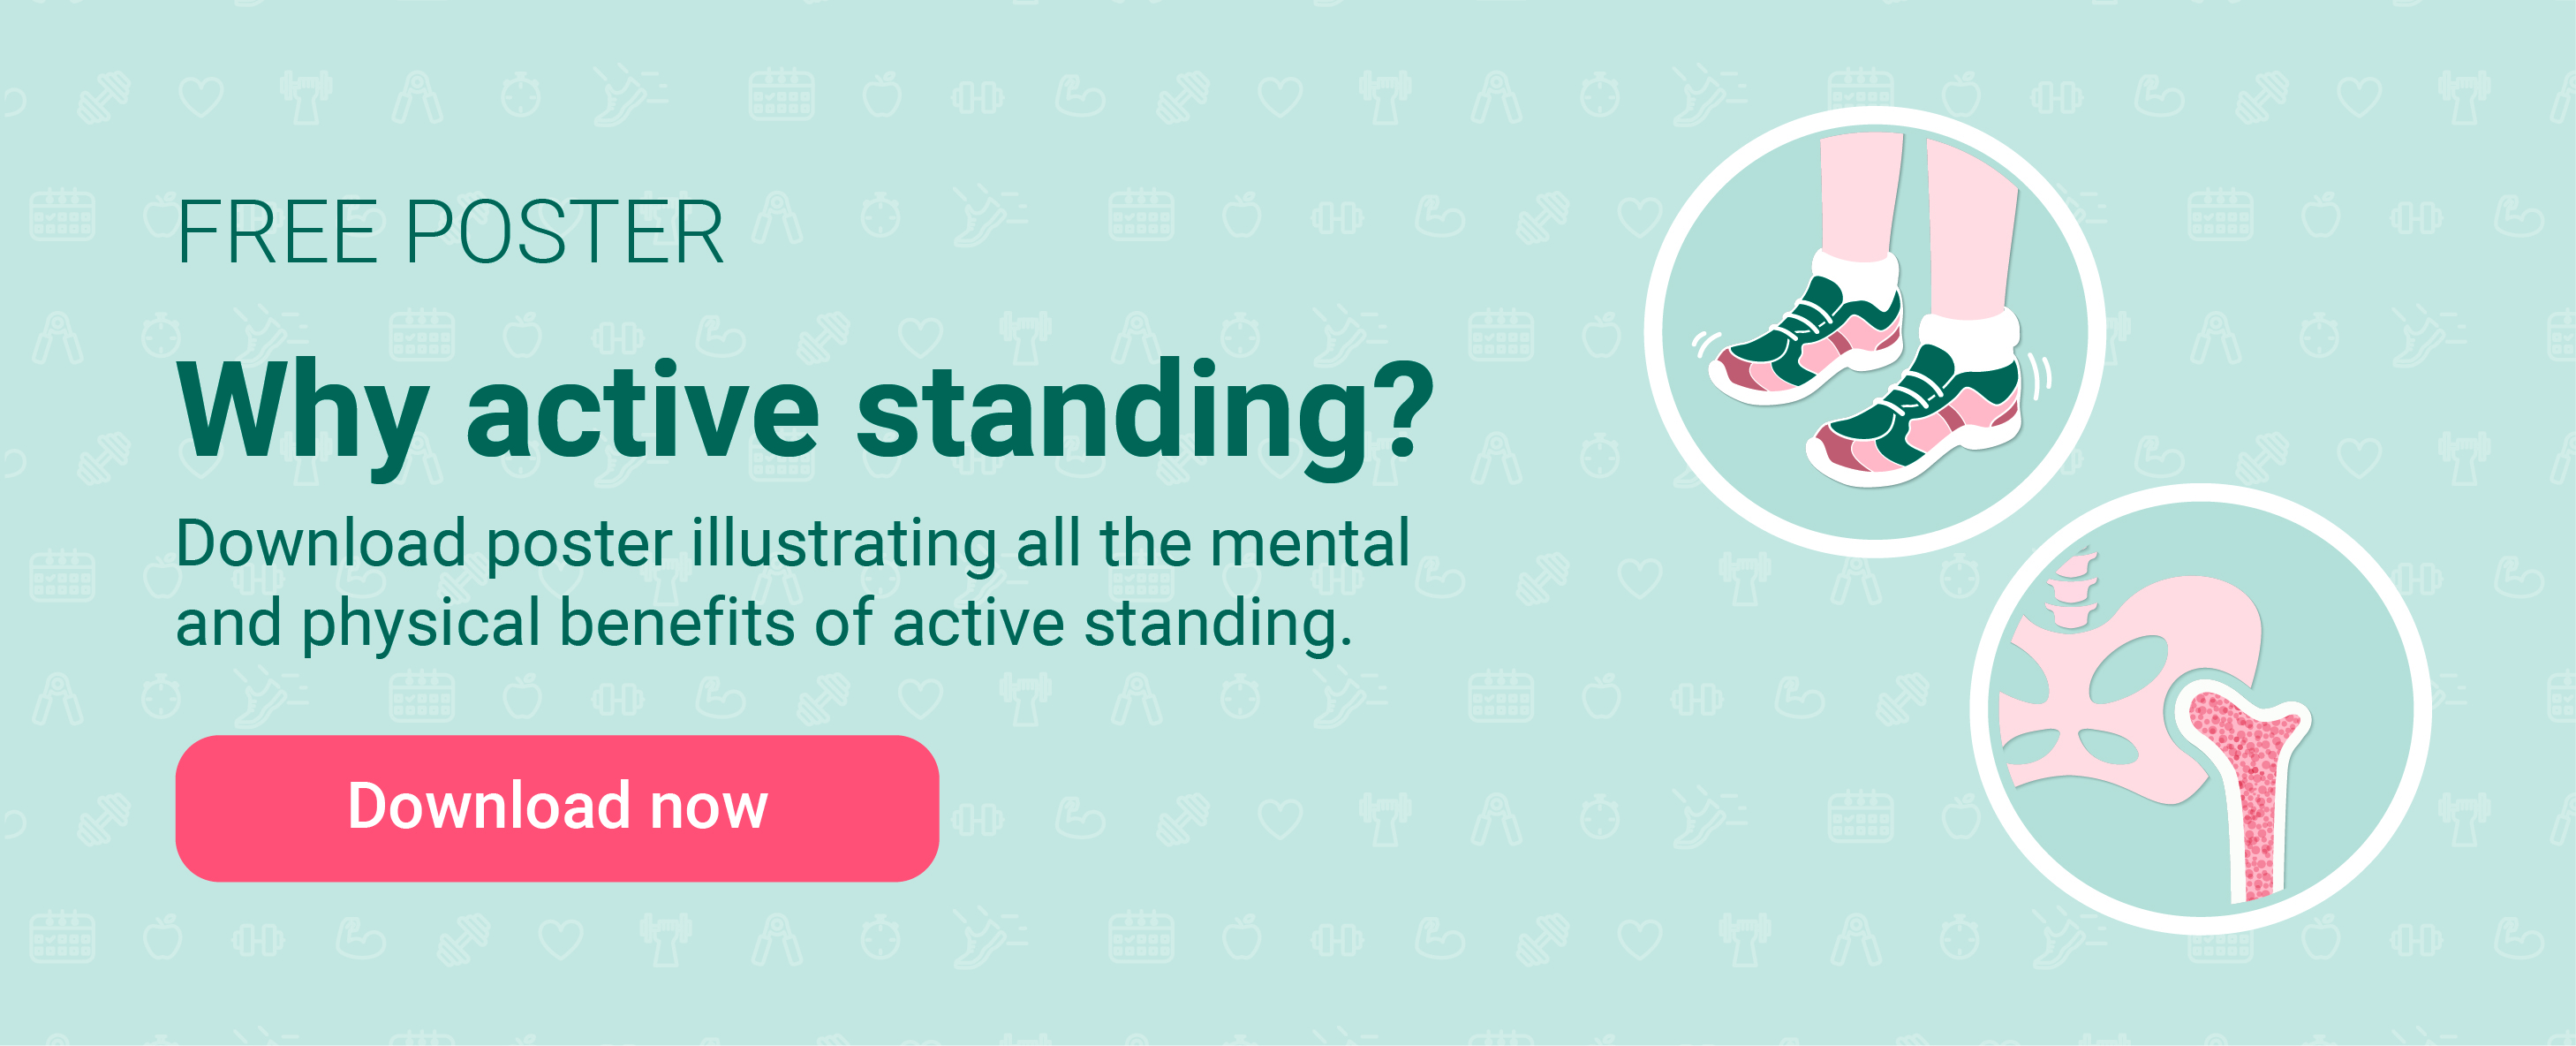 Download free poster about benefits of active standing